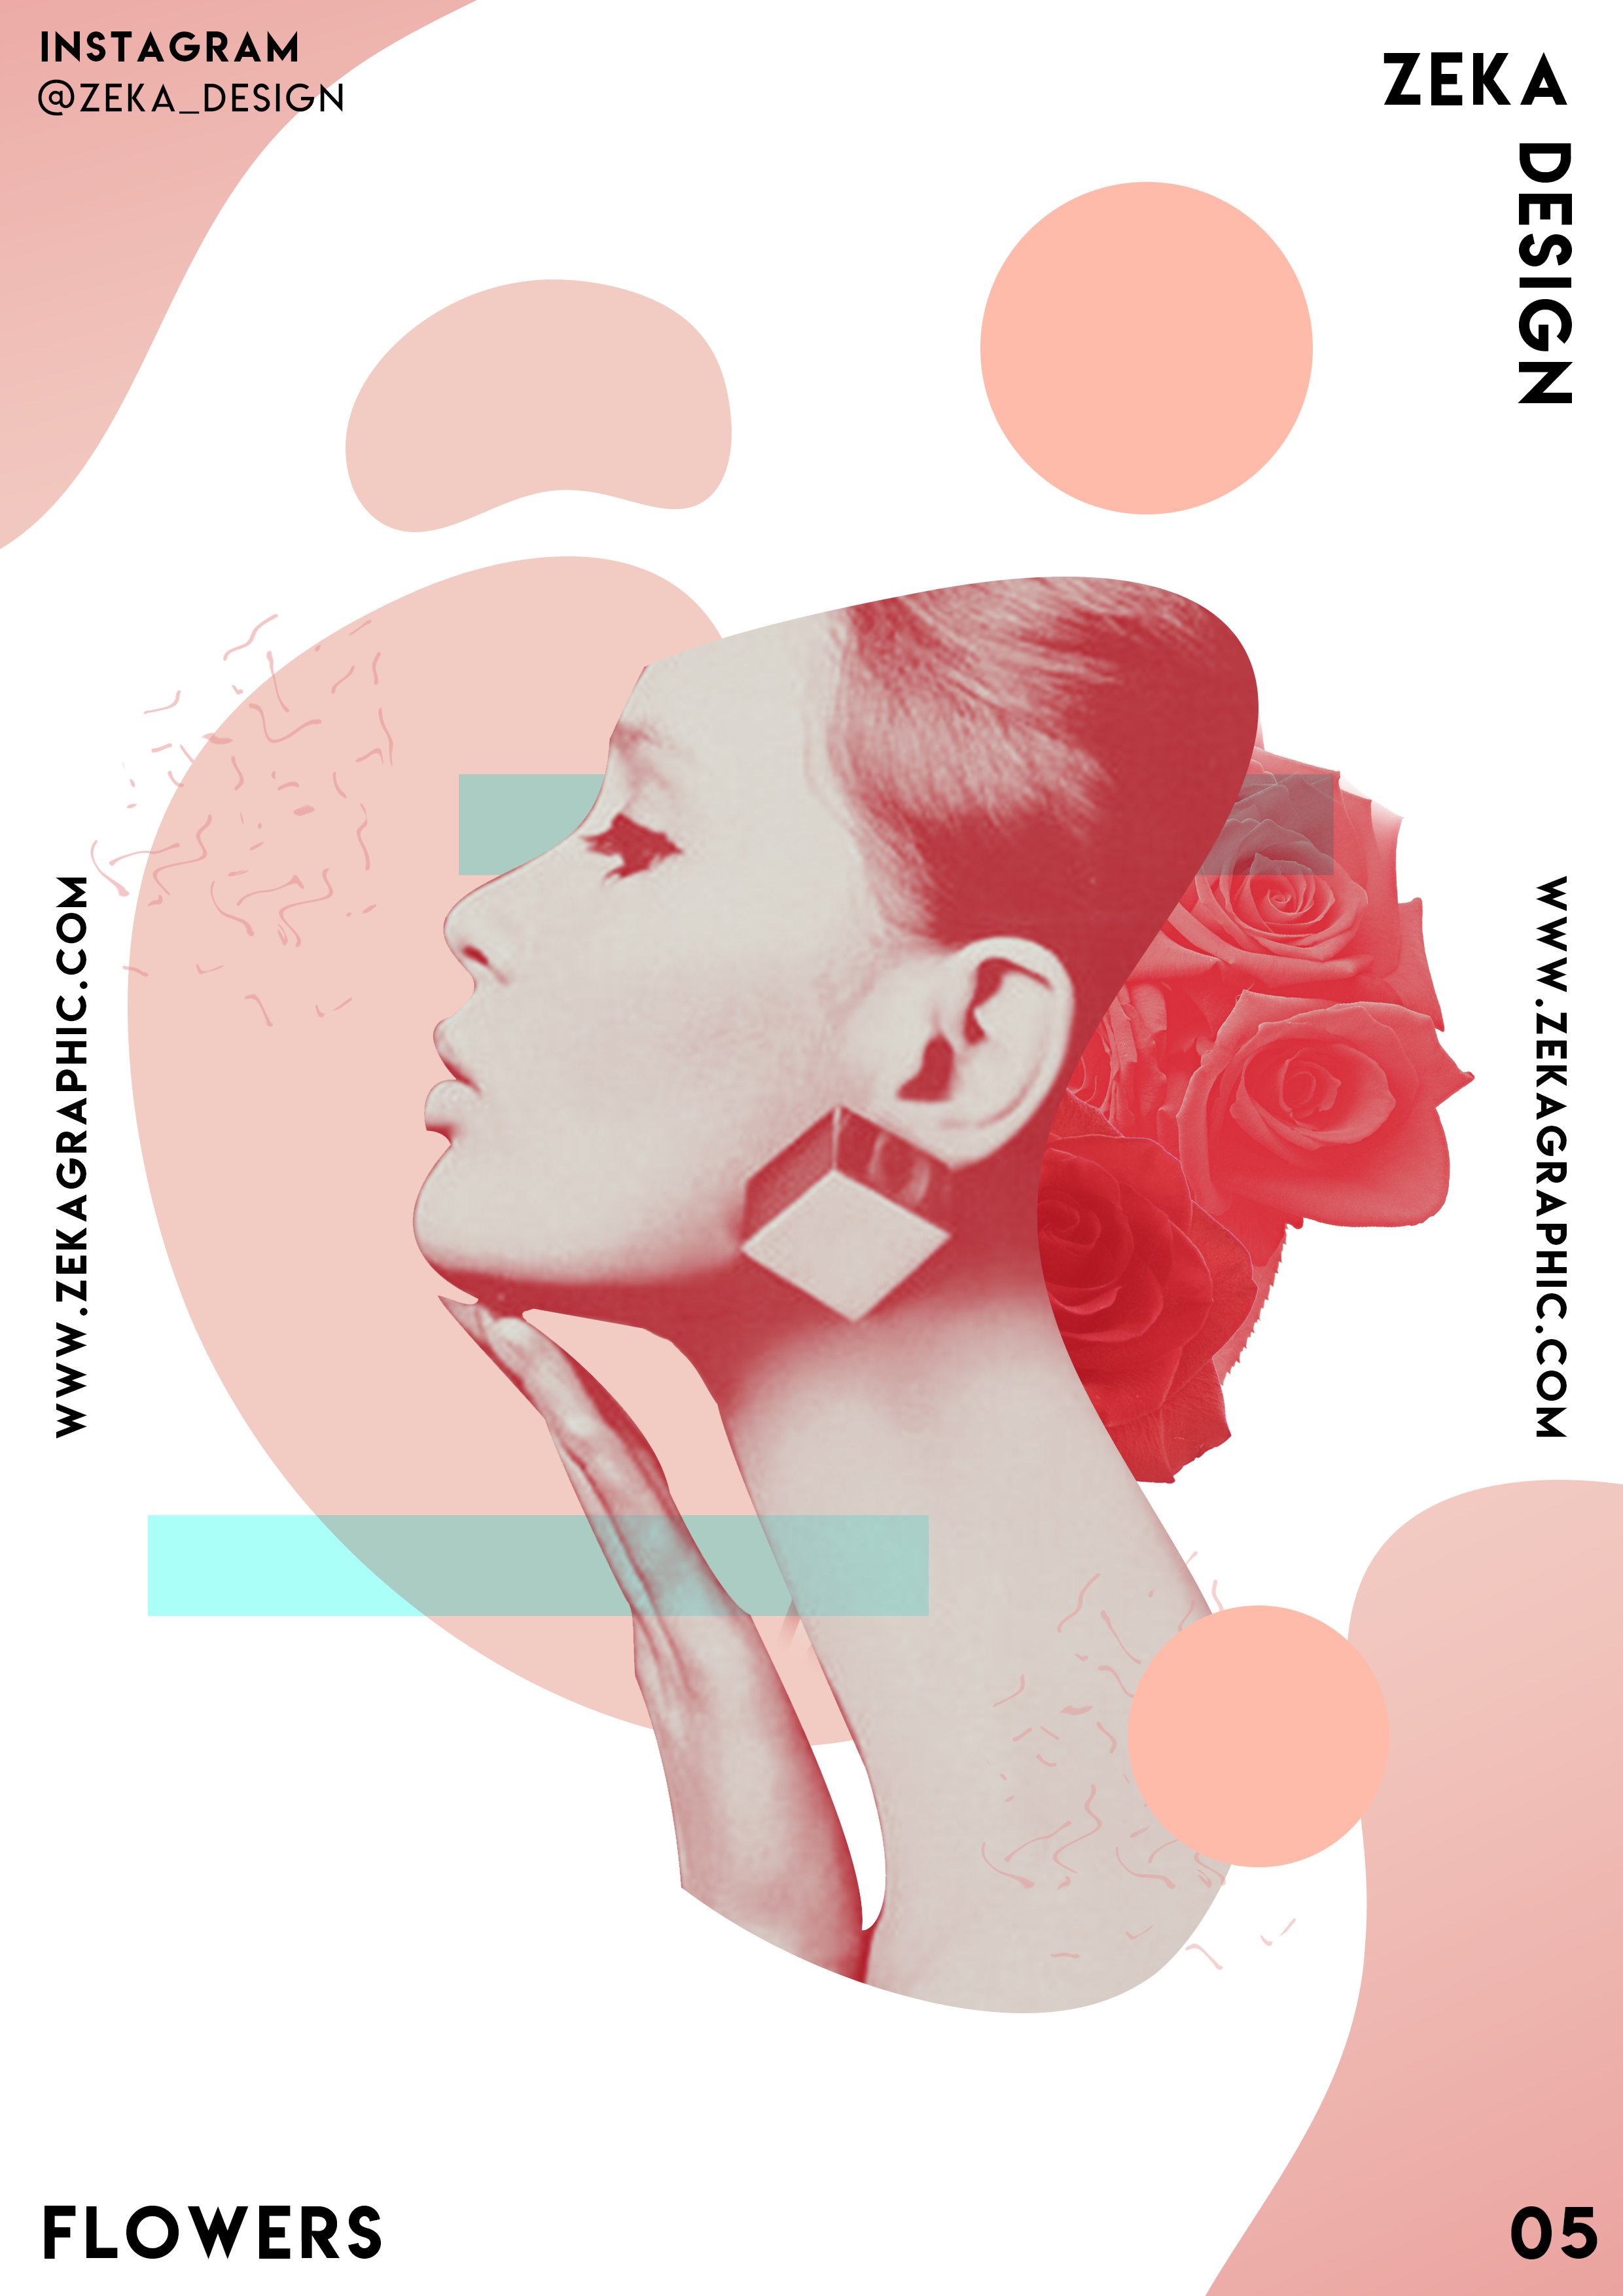 Minimalist And Creative Poster Design Art Flowers Collection 05 Rose Zeka Design Girly Graphic Design Abstract Graphic Design Digital Art Poster